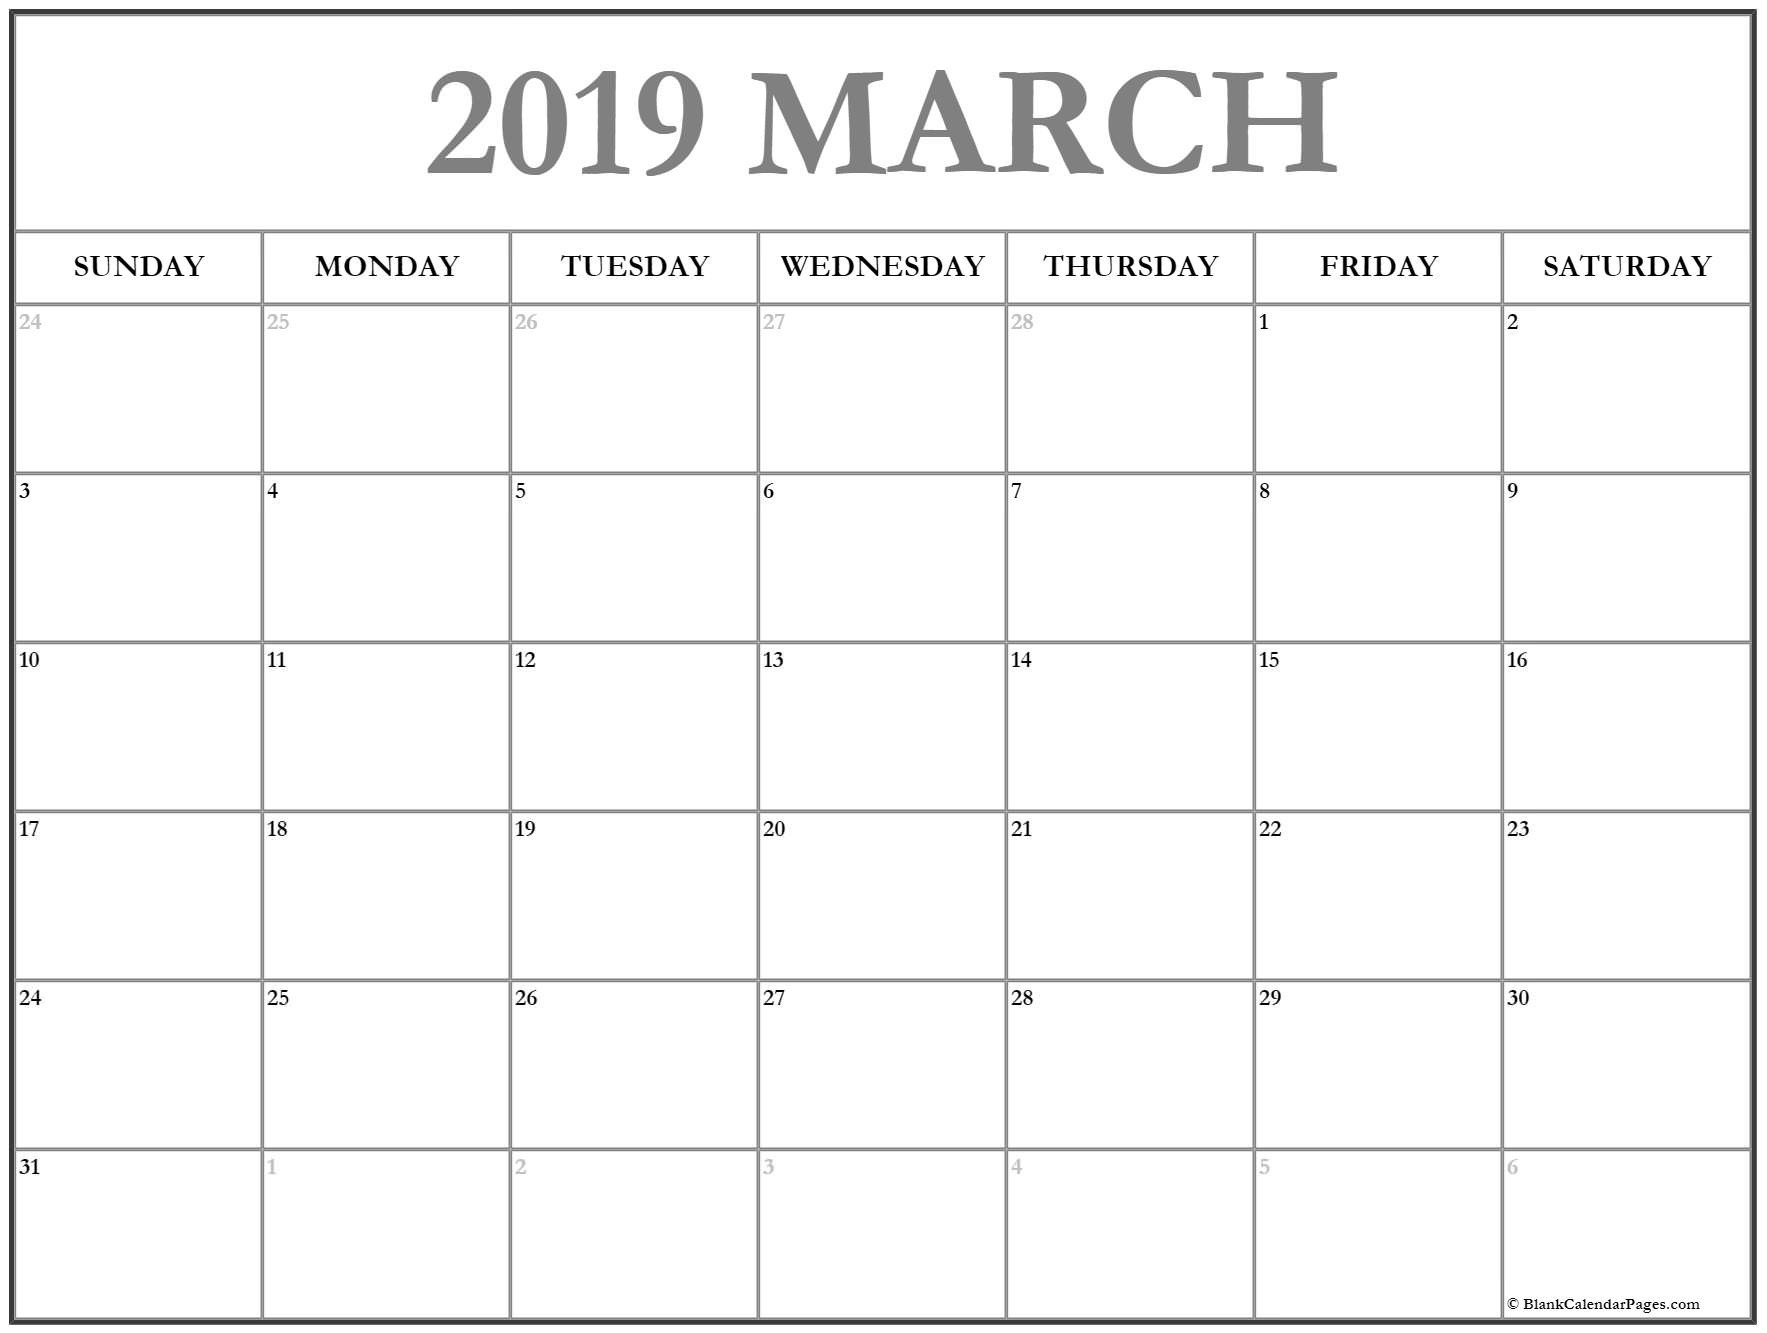 March Holiday Calendar 2019 Más Populares March 2019 Calendar Of March Holiday Calendar 2019 Más Caliente Printable March 2019 Calendar Template Holidays Yes Calendars